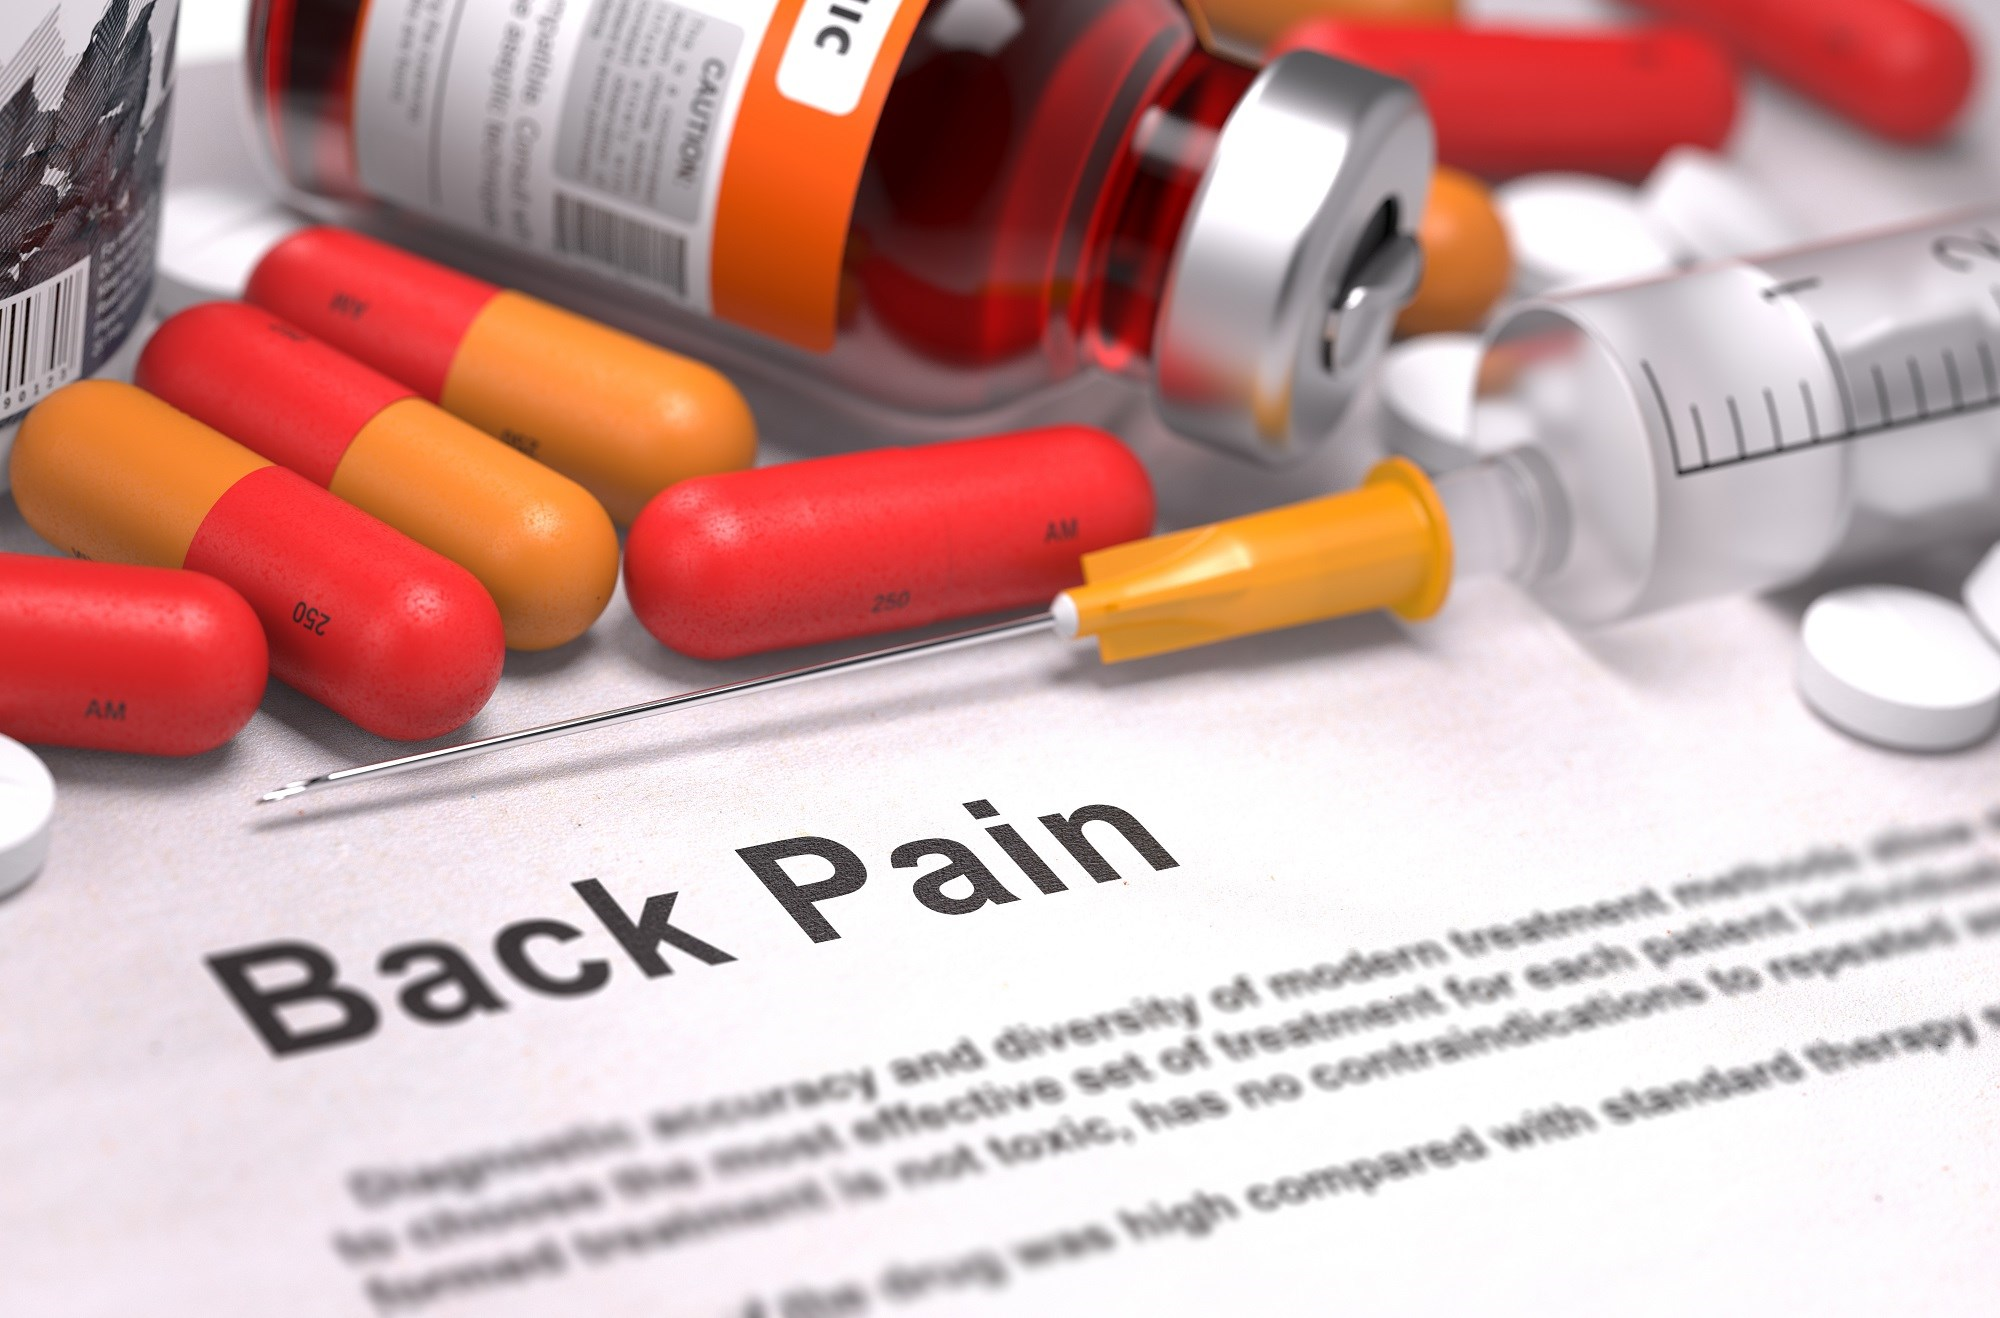 Gabapentin Superior to Pregabalin for Chronic Sciatica